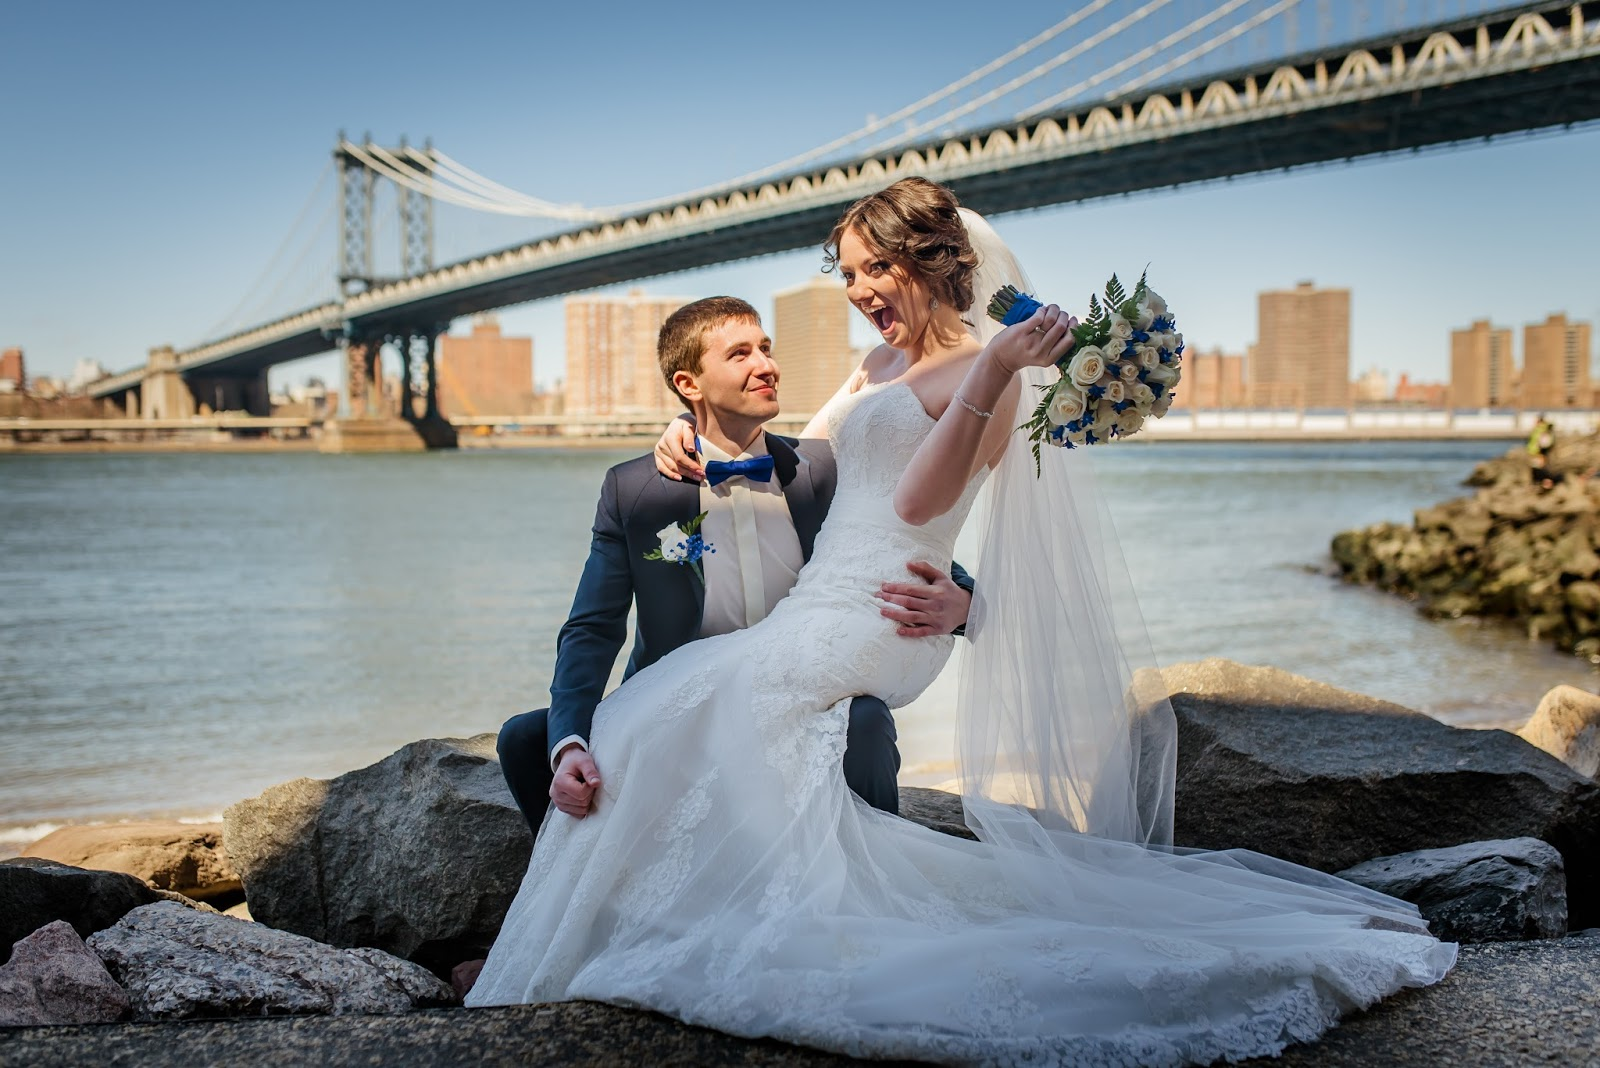 6 Fashion Rules for Grooms - Fine Art Wedding Photographer